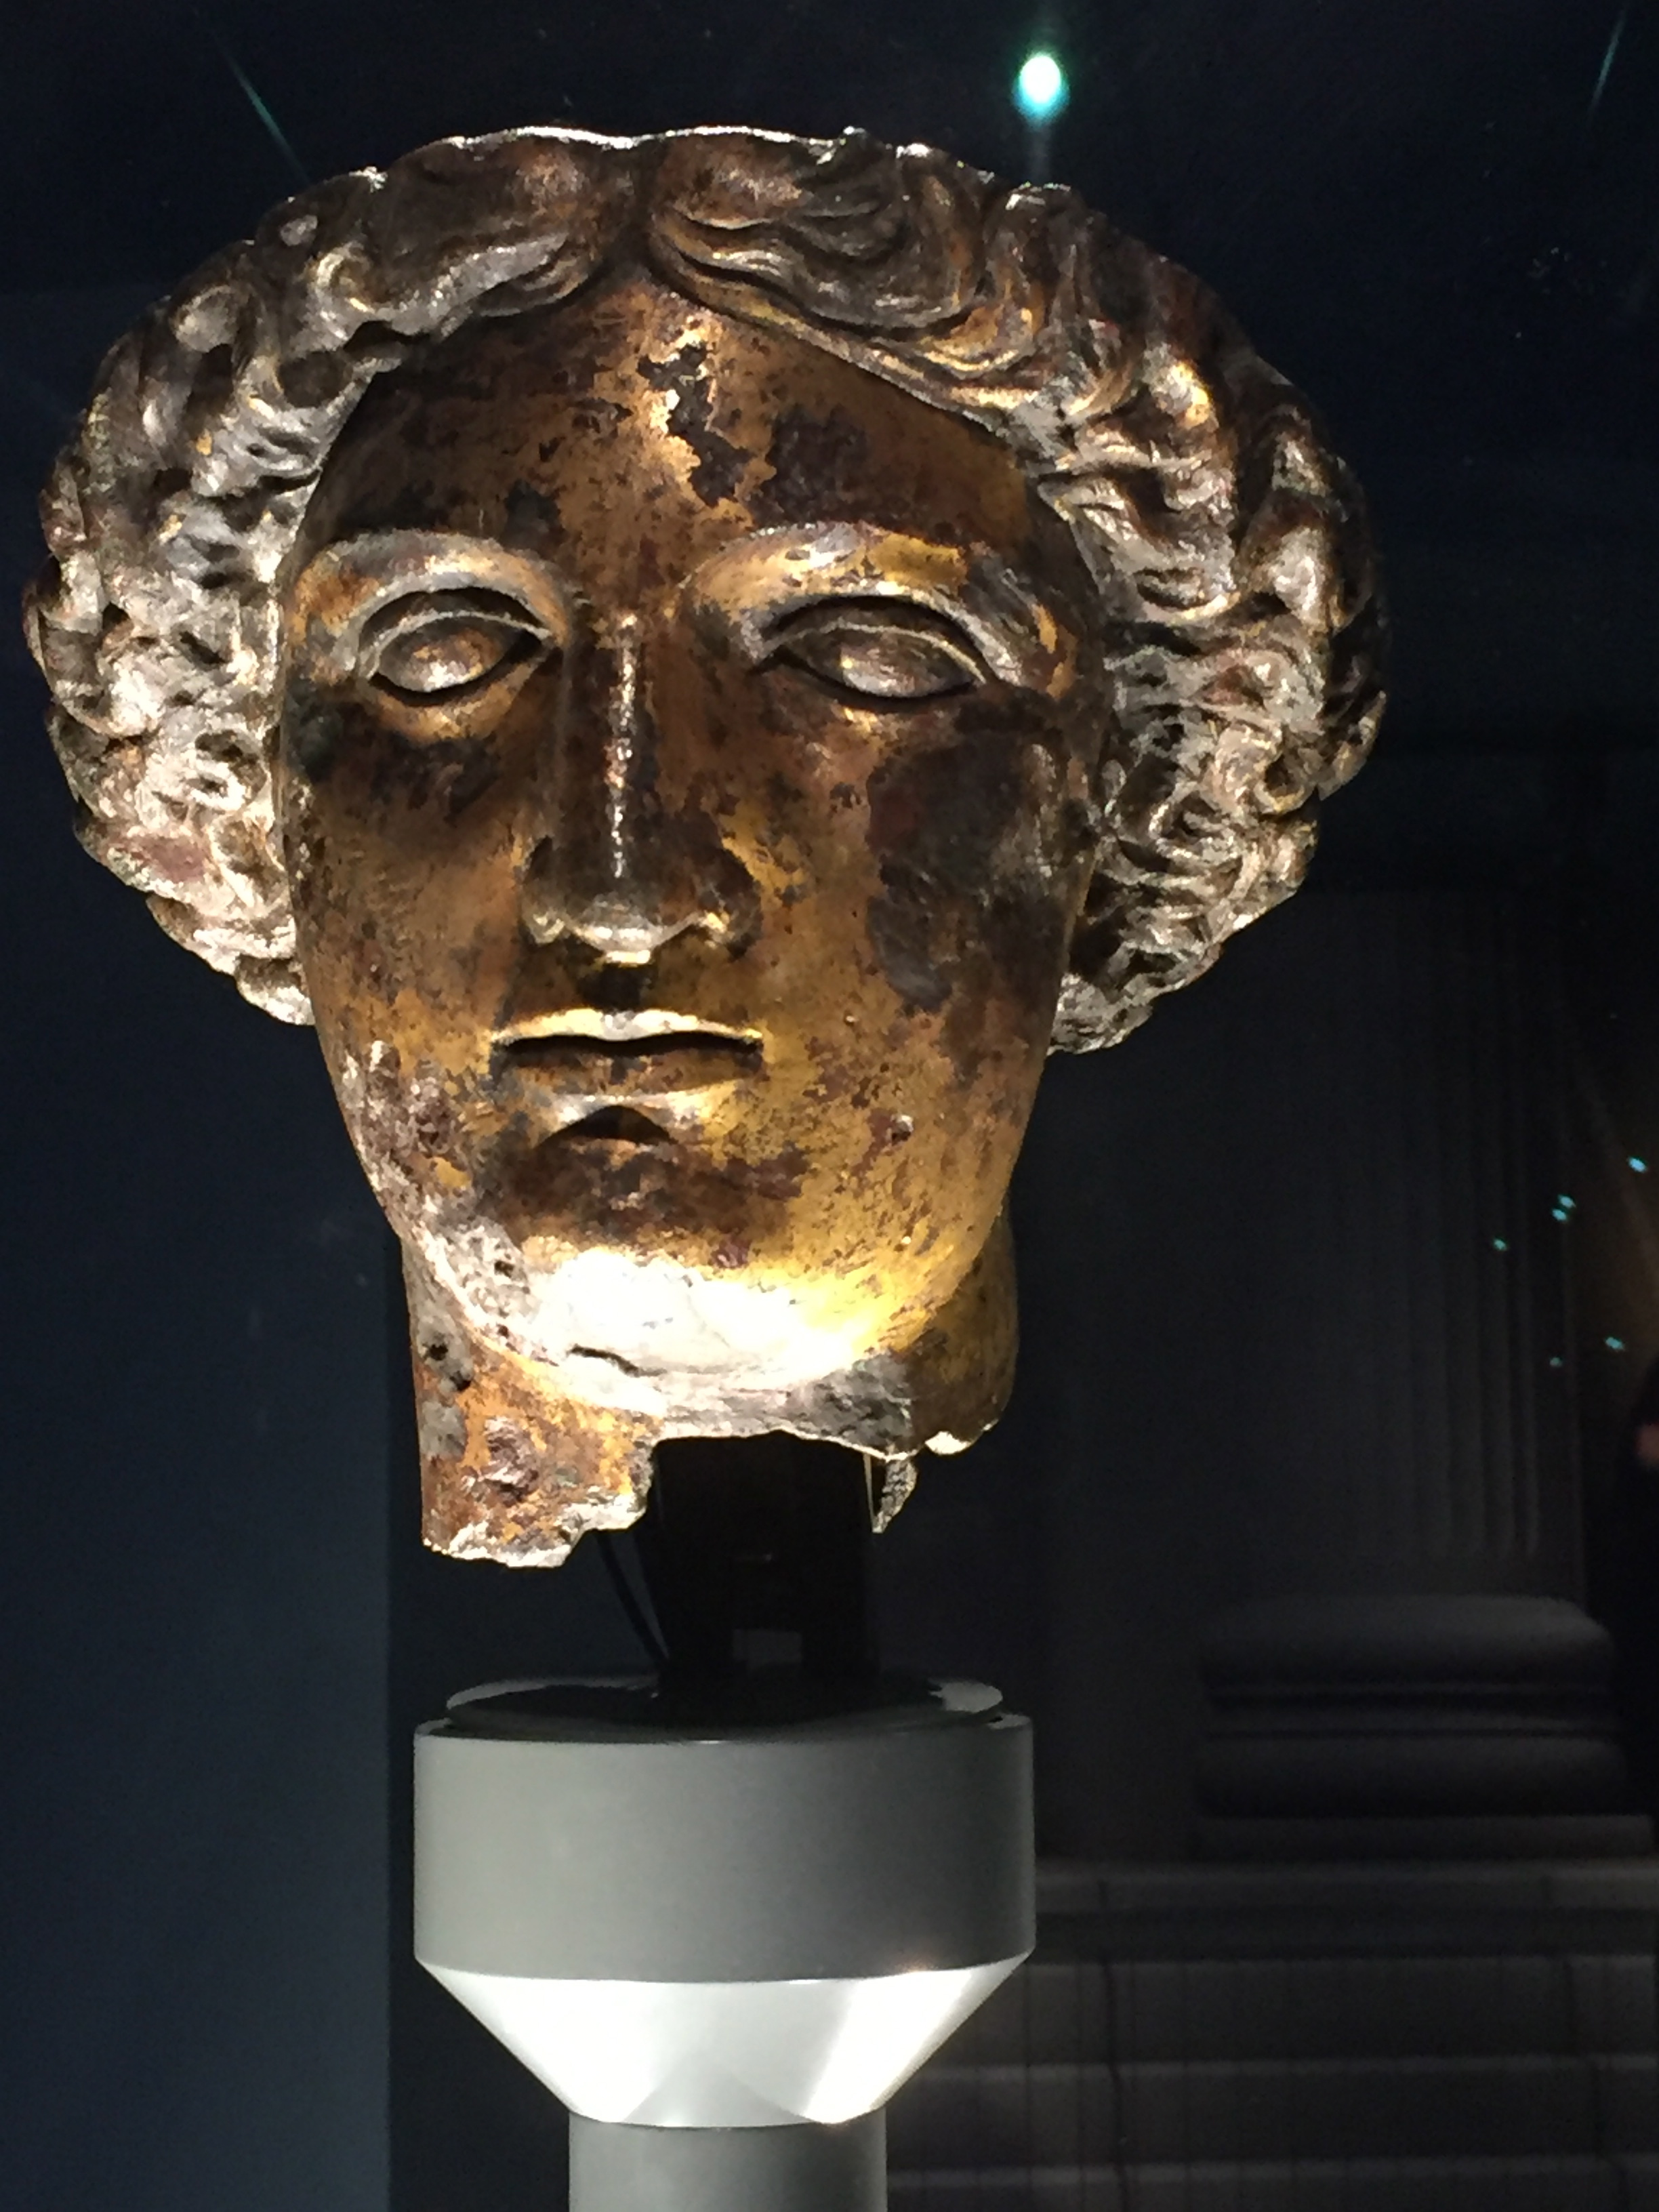 Sulis Minerva - Is she the woman who dips in and out of Dana's reality?